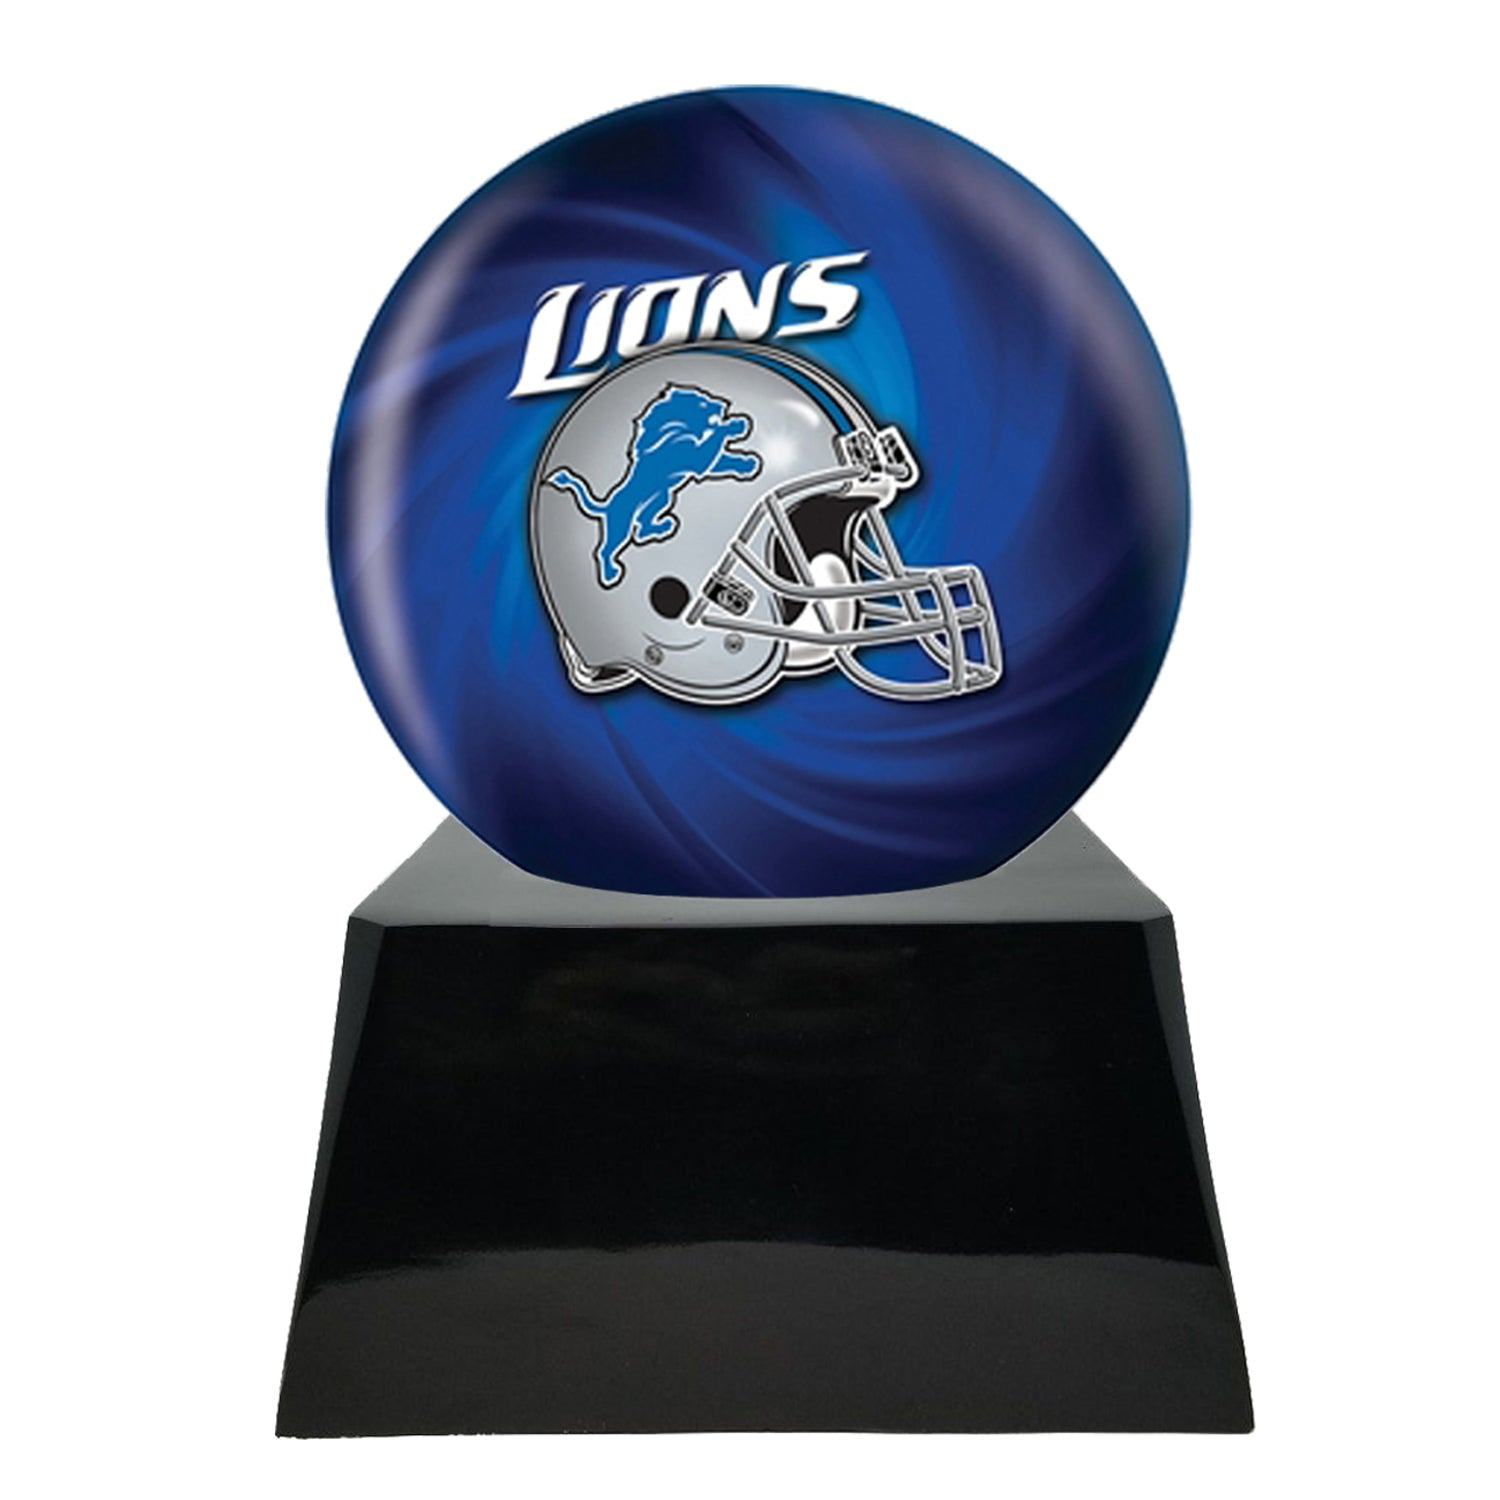 Football Team Urn For Ashes - Football Cremation Urn and Detroit Lions Ball Decor with Custom Metal Plaque